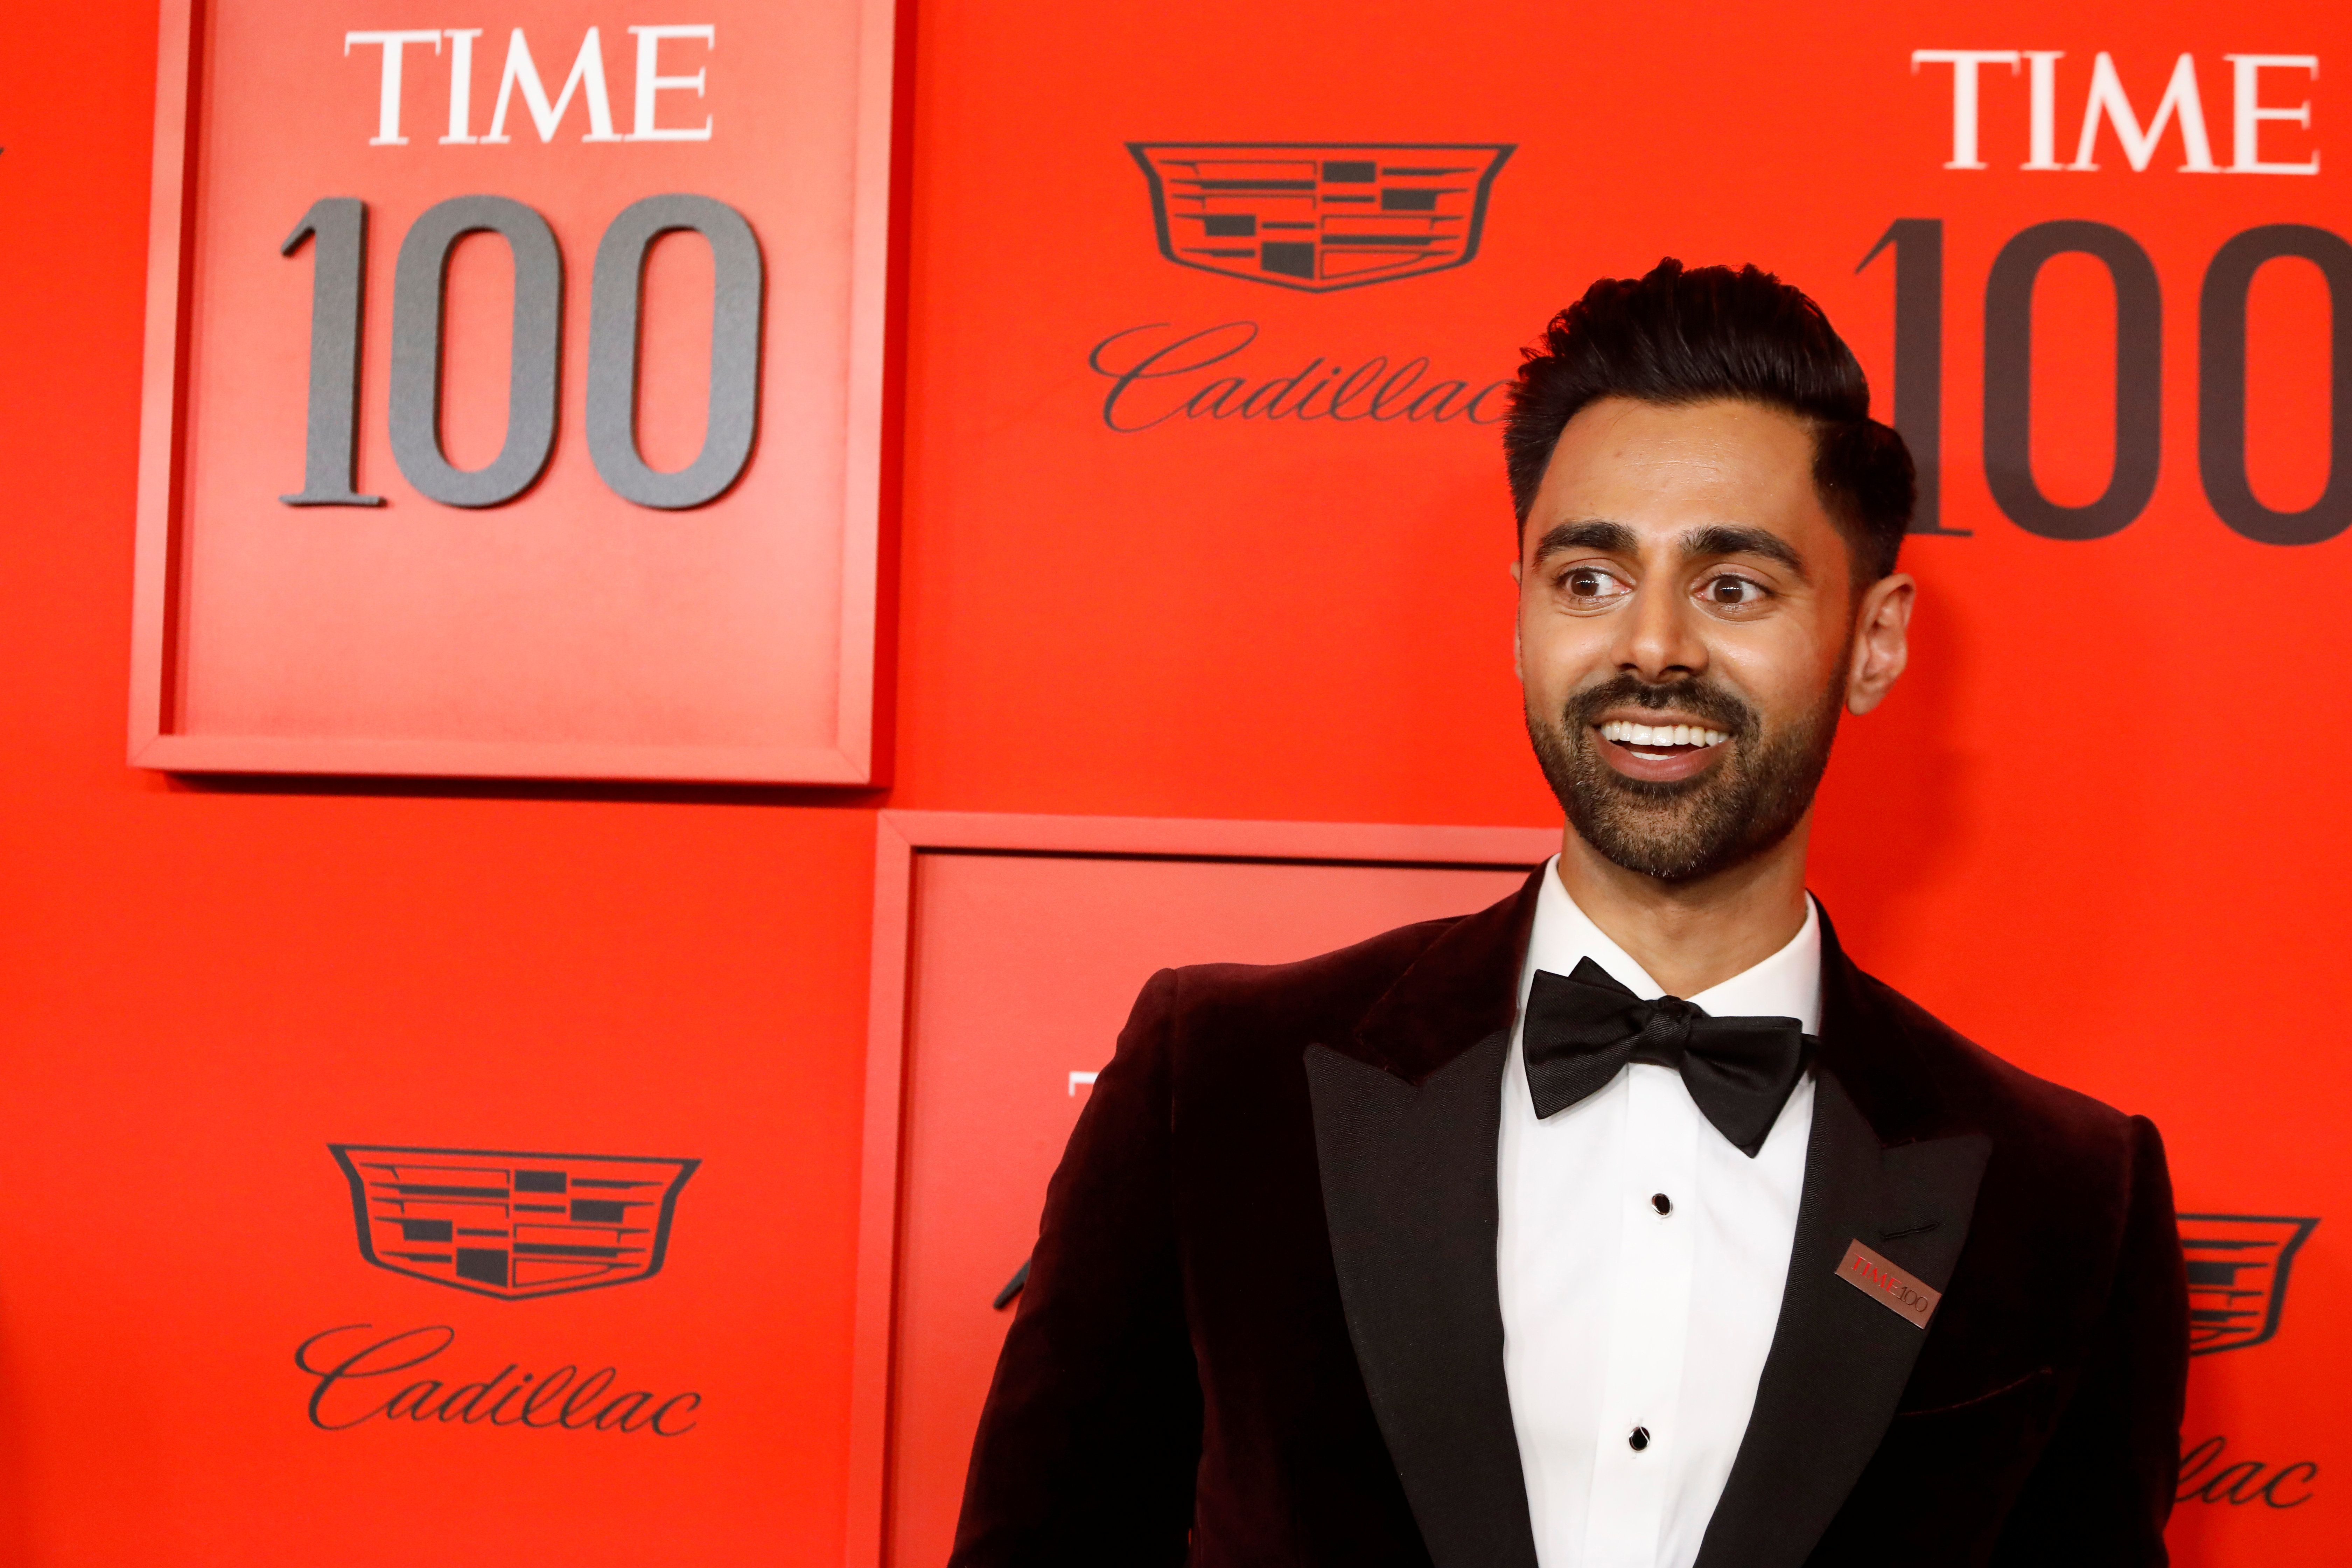 Comedian Hasan Minhaj arrives for the Time 100 Gala celebrating Time magazine's 100 most influential people in the world in New York, U.S., April 23, 2019. Picture taken April 23, 2019. REUTERS/Andrew Kelly